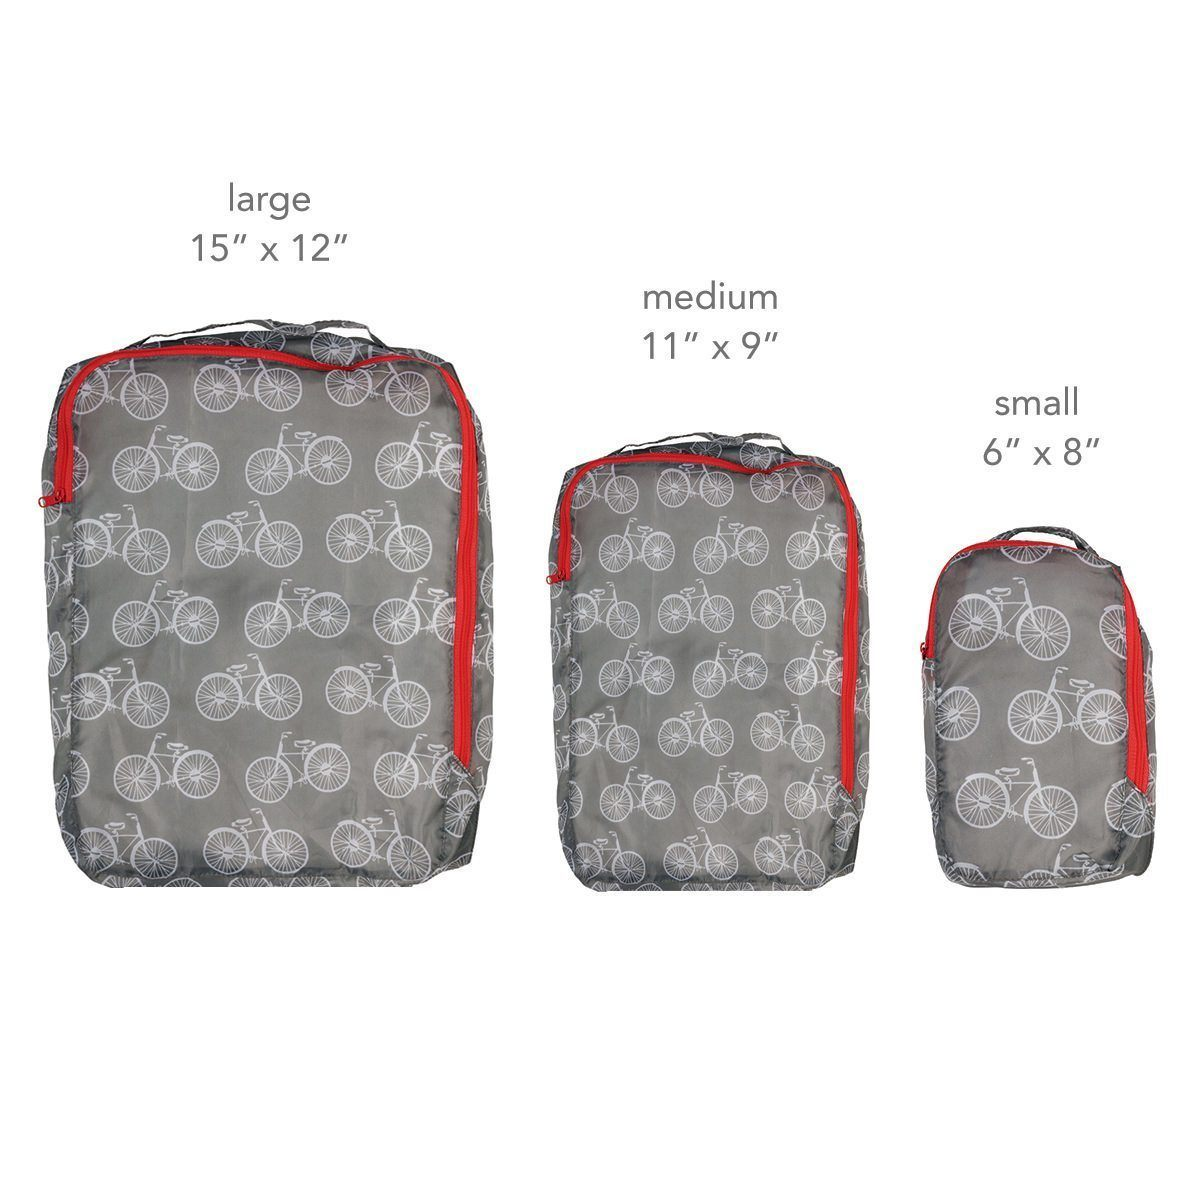 Summer Bikes Blu Bag Travel Organizer Set of Three - rockflowerpaper LLC